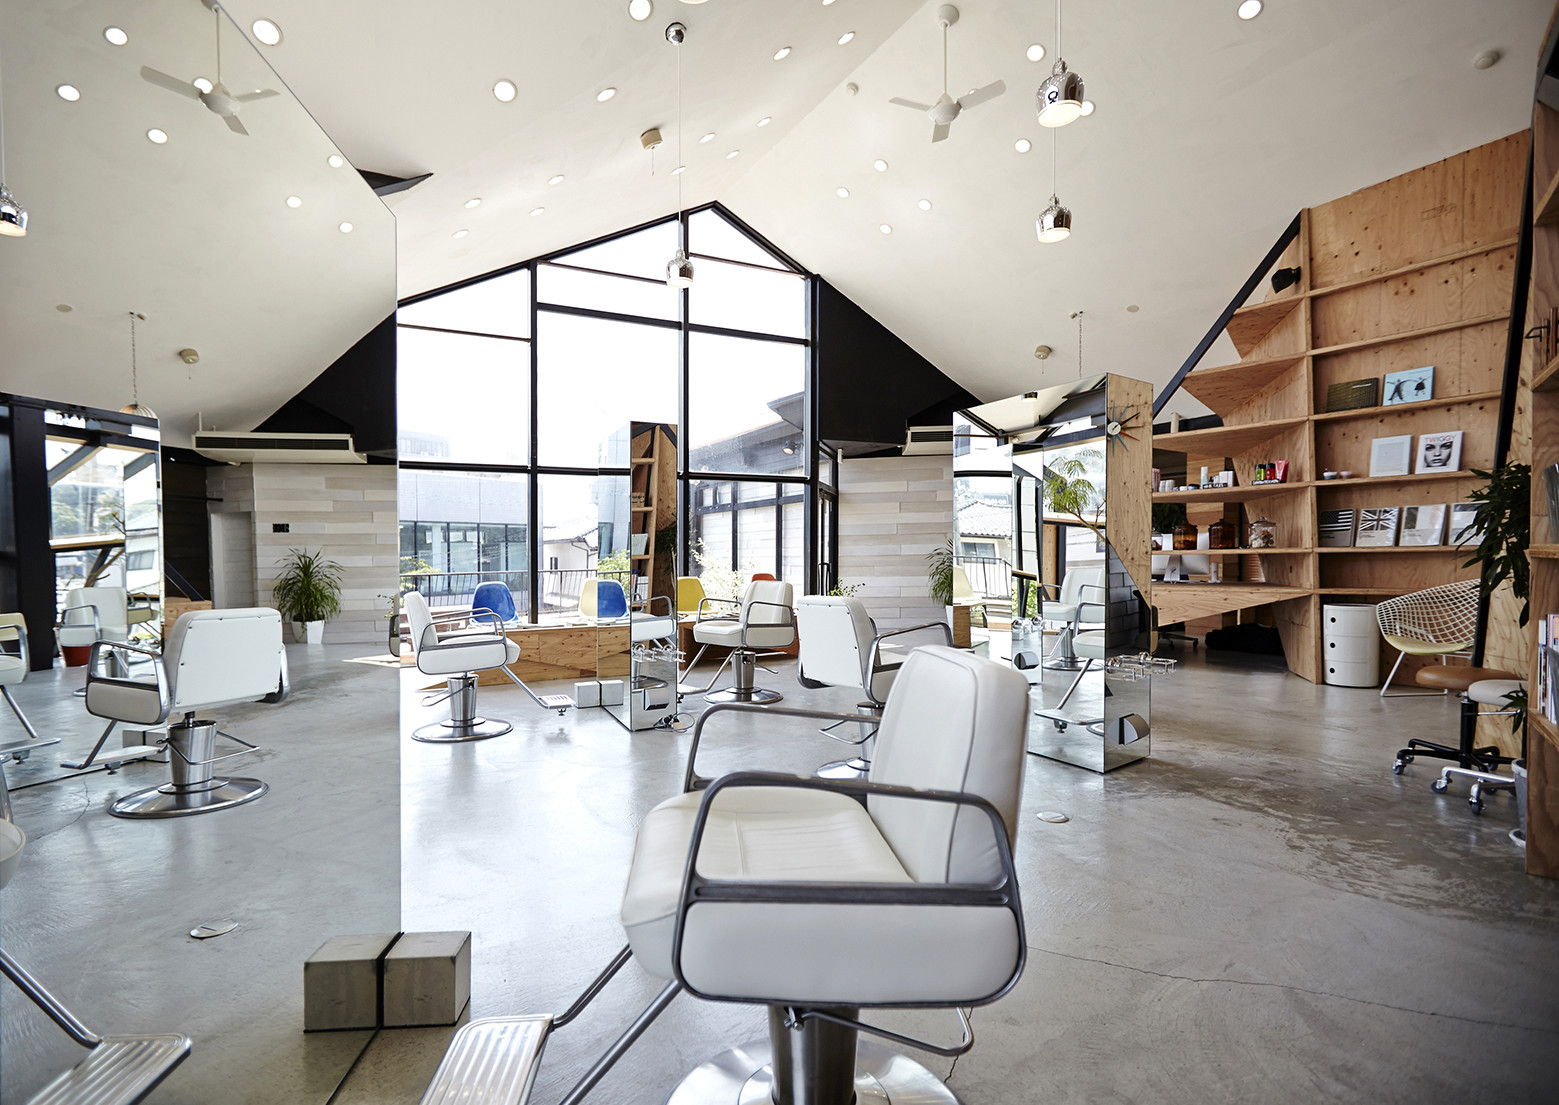 Hair salon slundre bhis archdaily for Photo salon